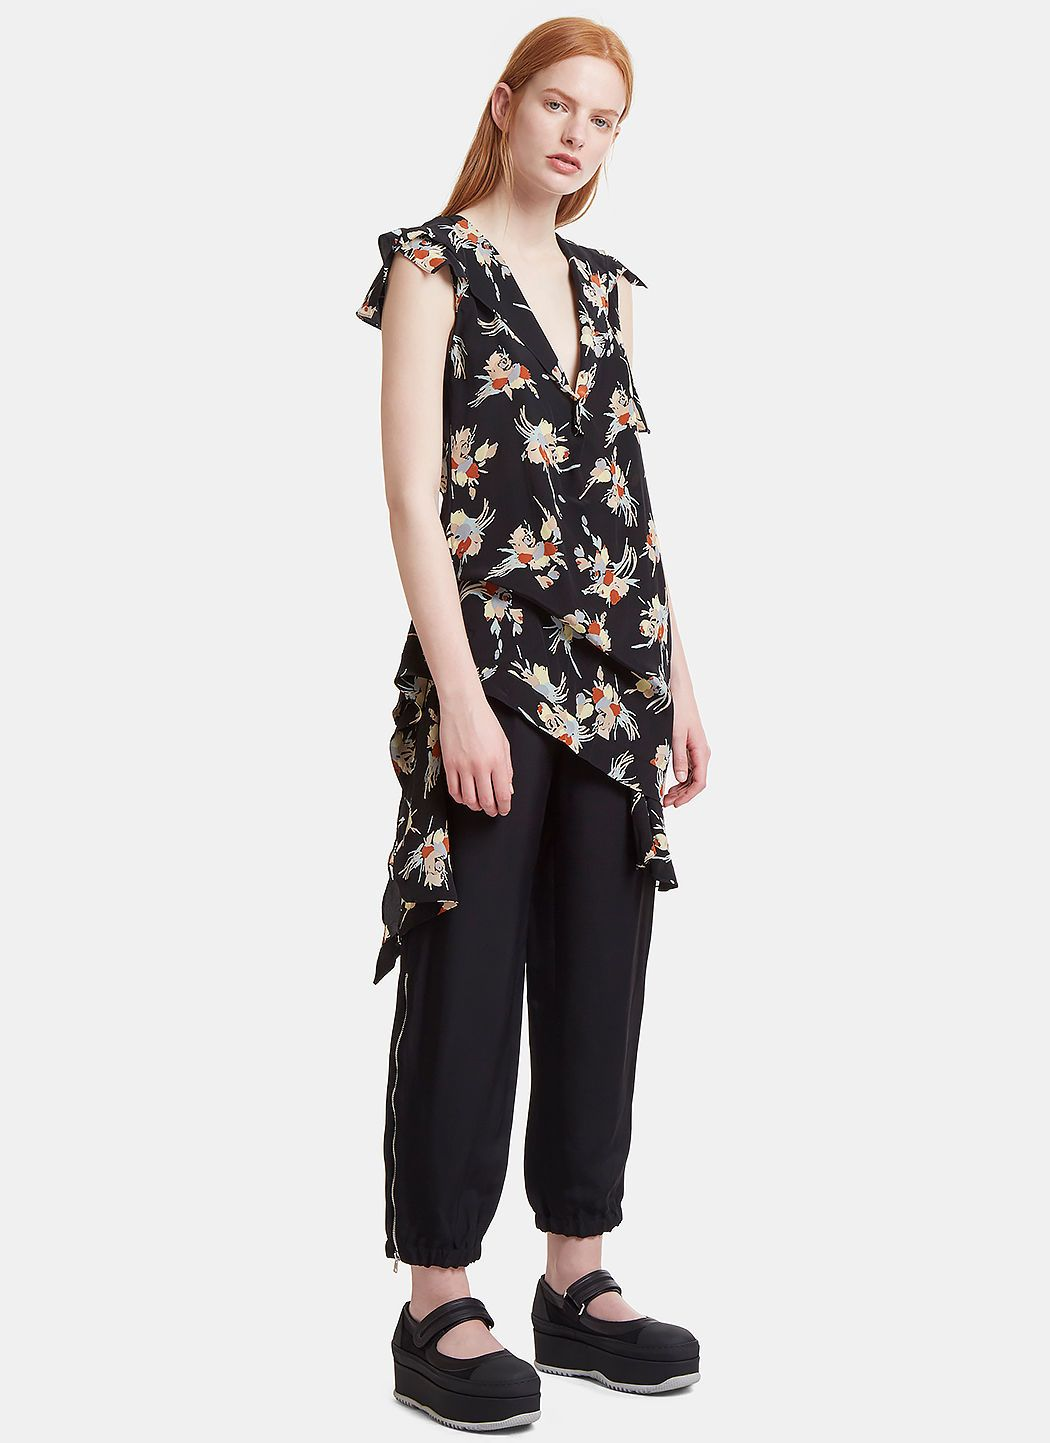 Marni Woman Ruched Floral-print Silk-twill Top Black Size 36 Marni Outlet With Mastercard Factory Outlet 2018 Unisex Cheap Online Sale Footlocker Finishline WWH3fO